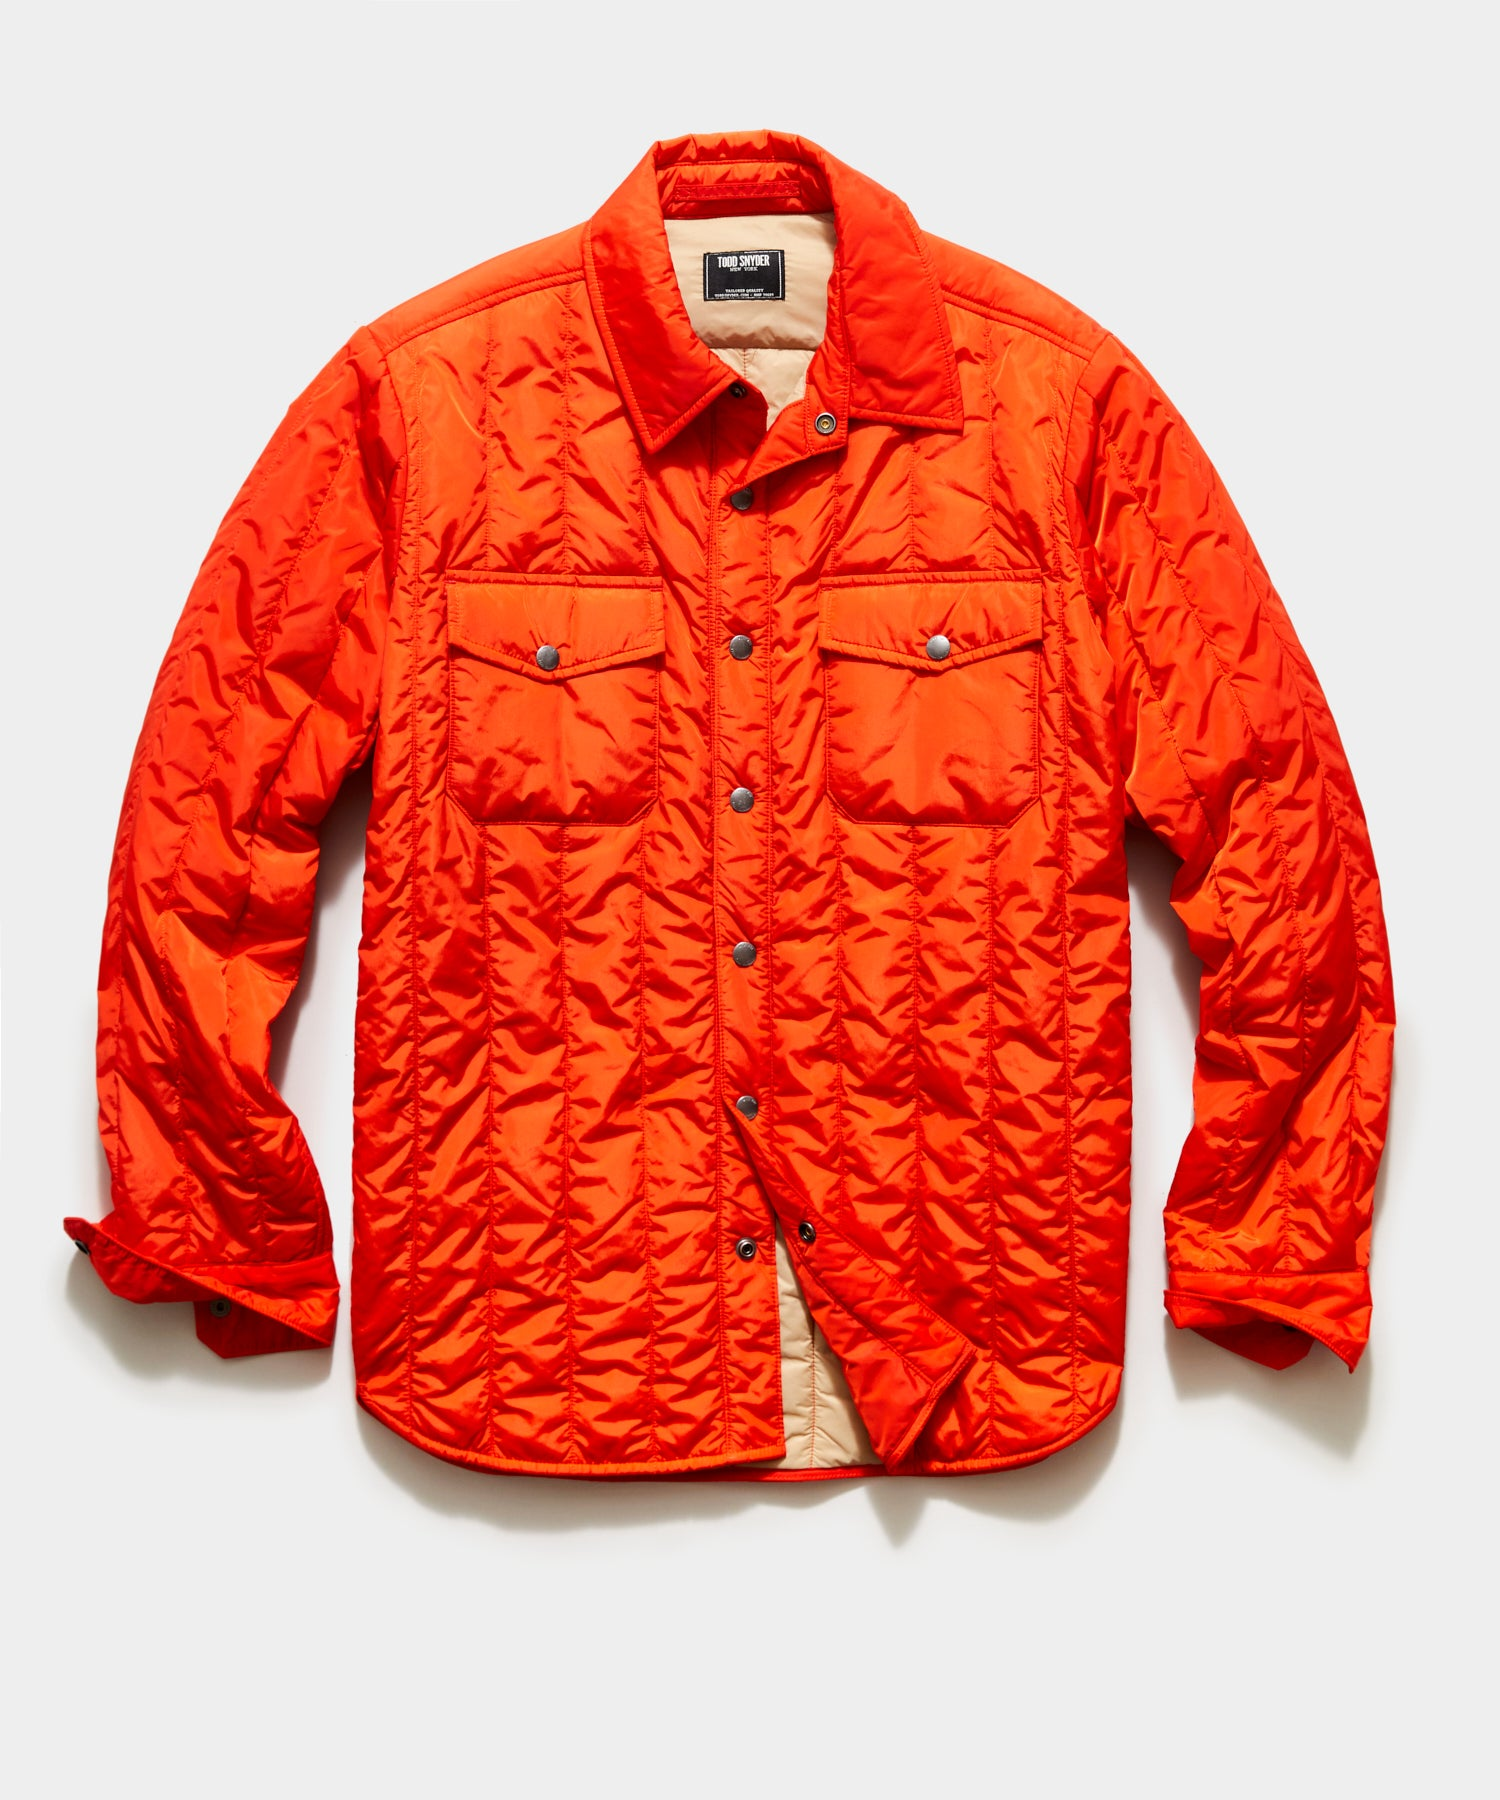 Italian Quilted Liner Jacket in Orange